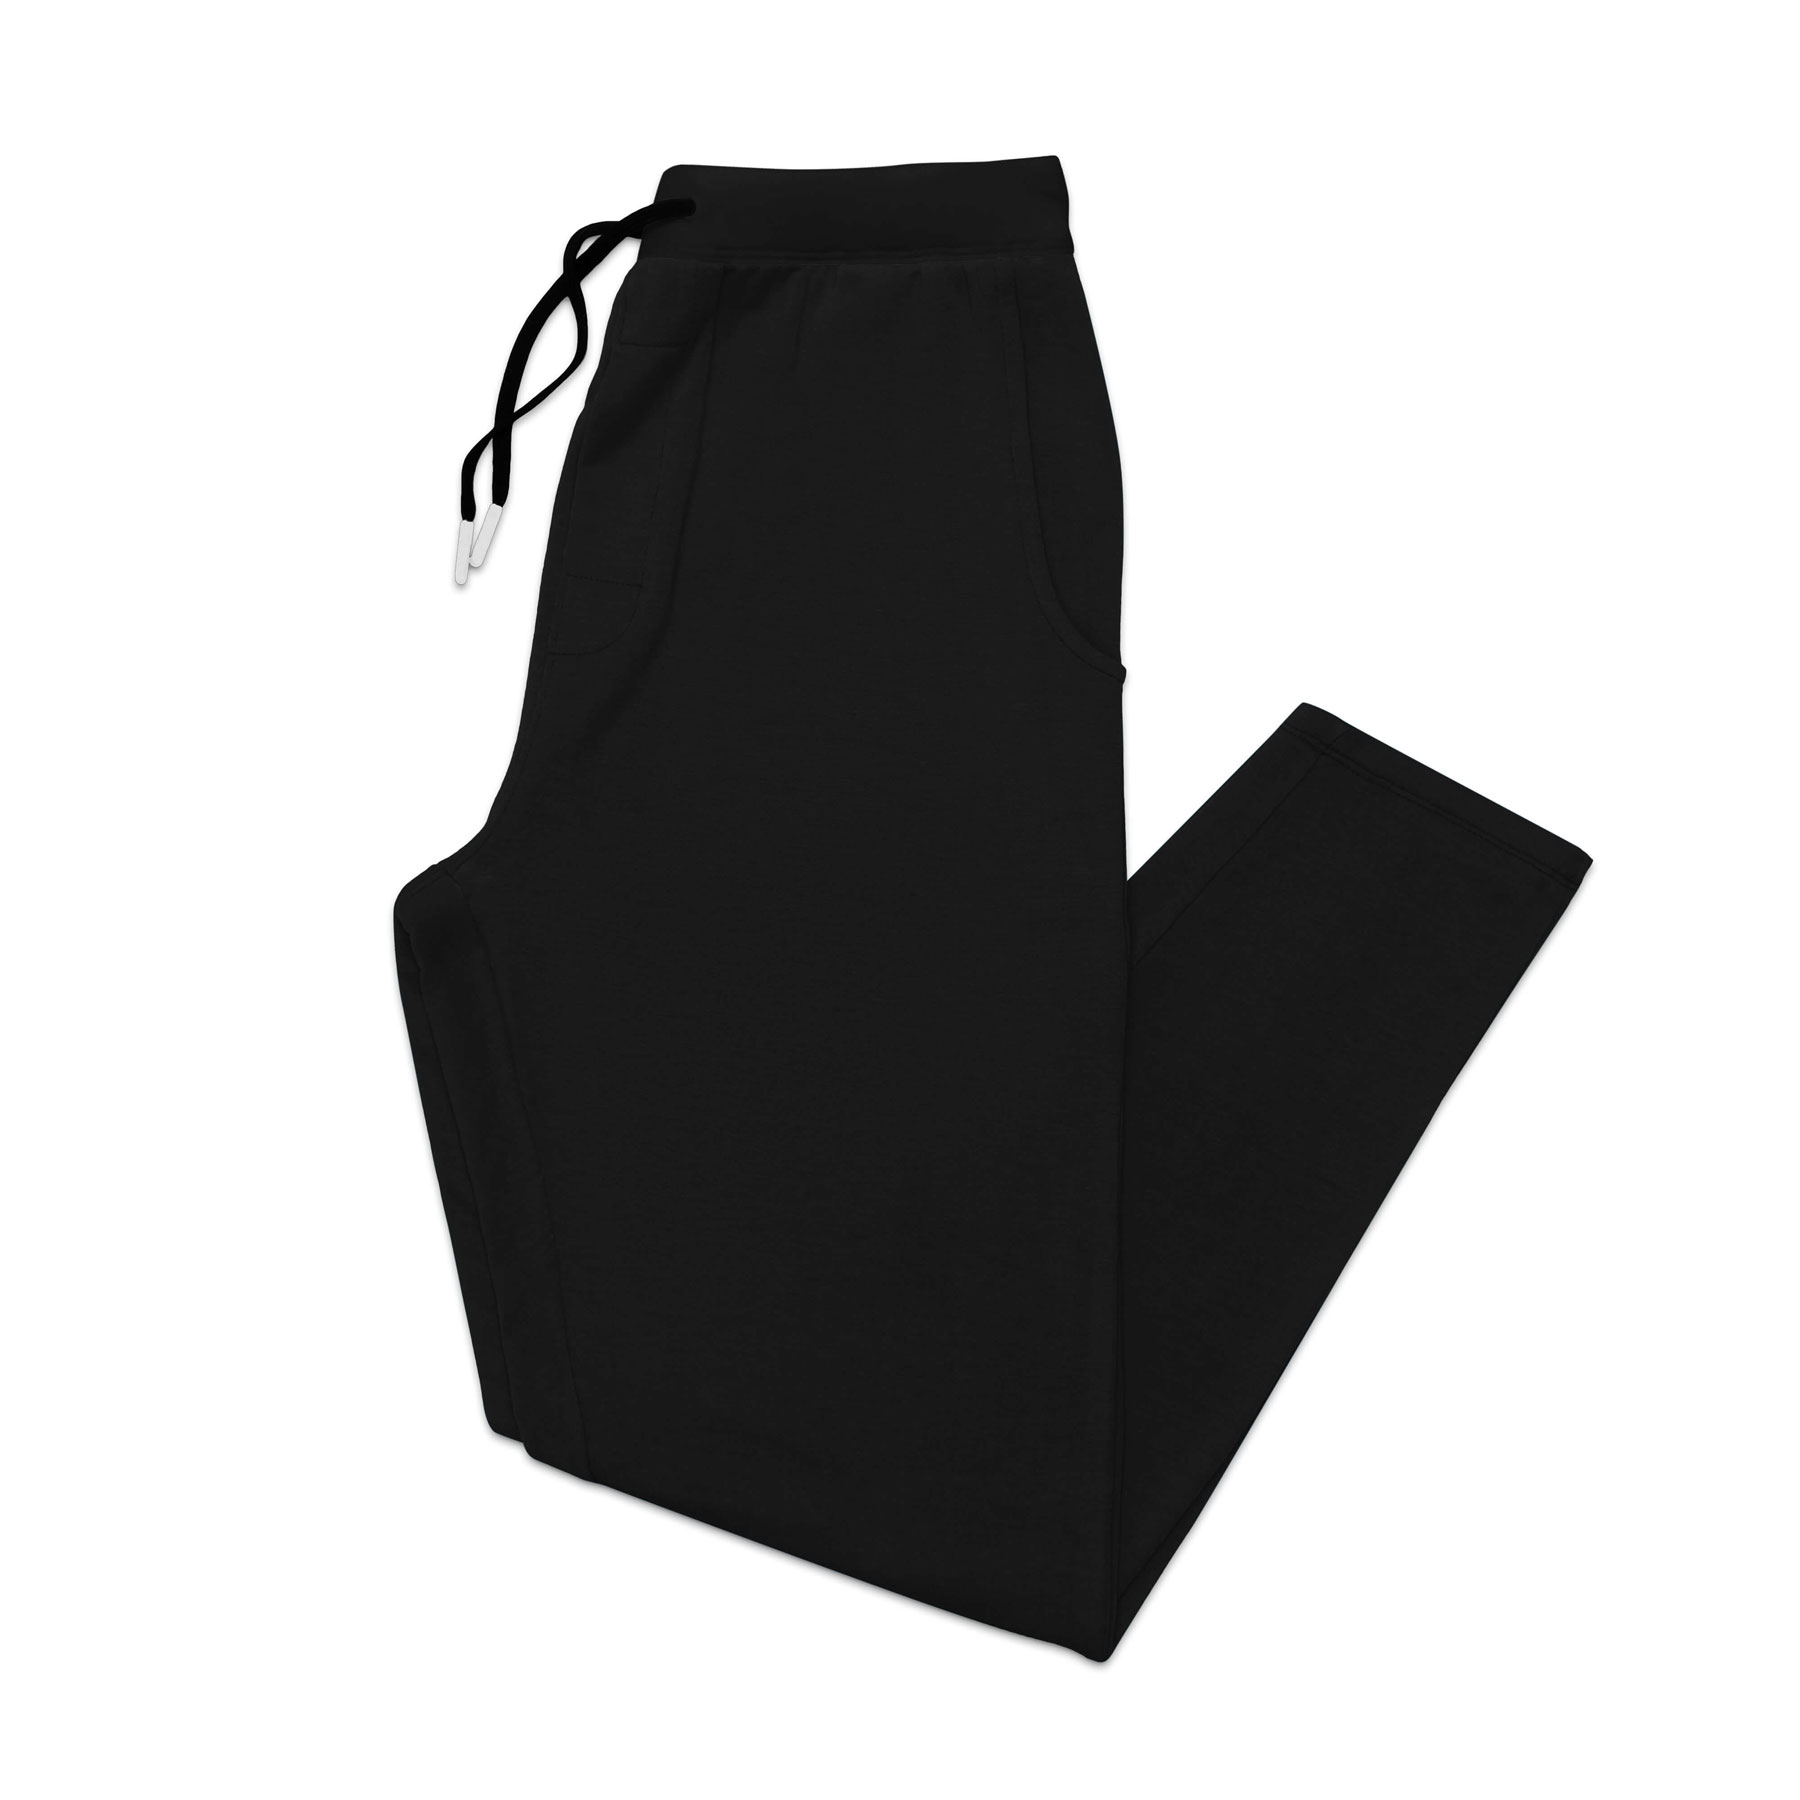 Gifts for sisters - Black/Black Long Jambys